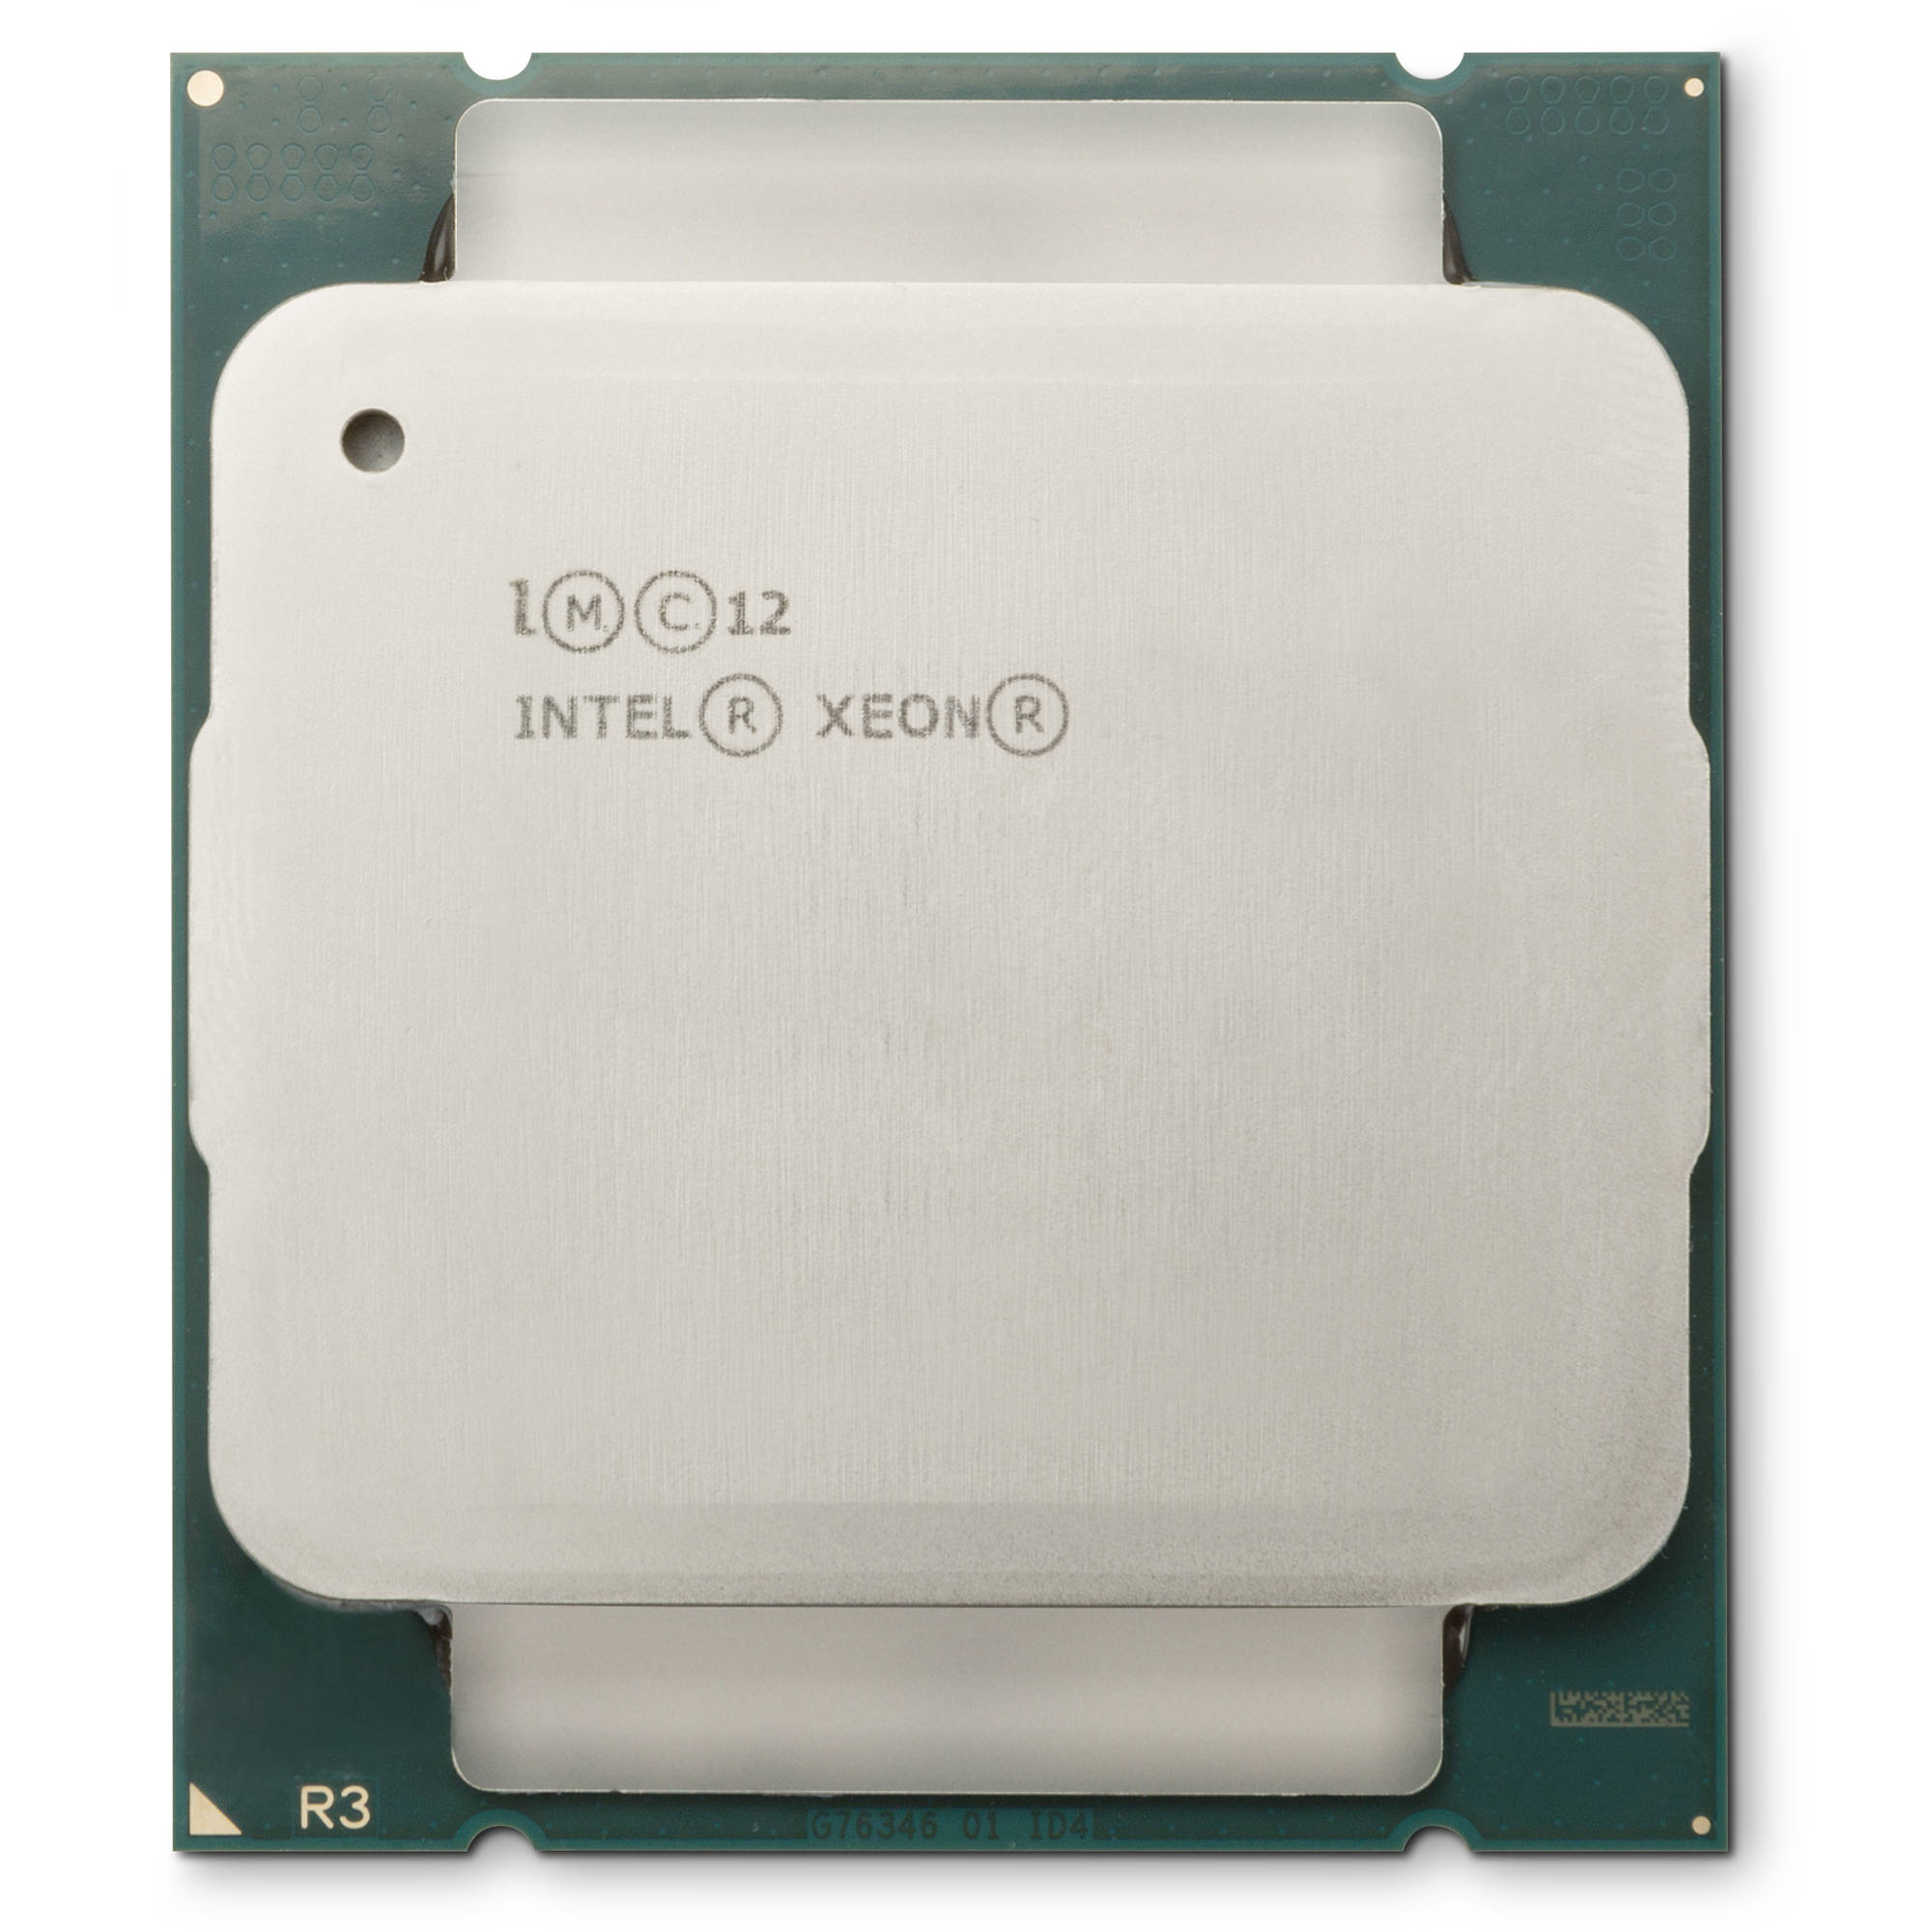 HP ML350 Gen9 Intel Xeon E5-2620 v3 Processor Kit